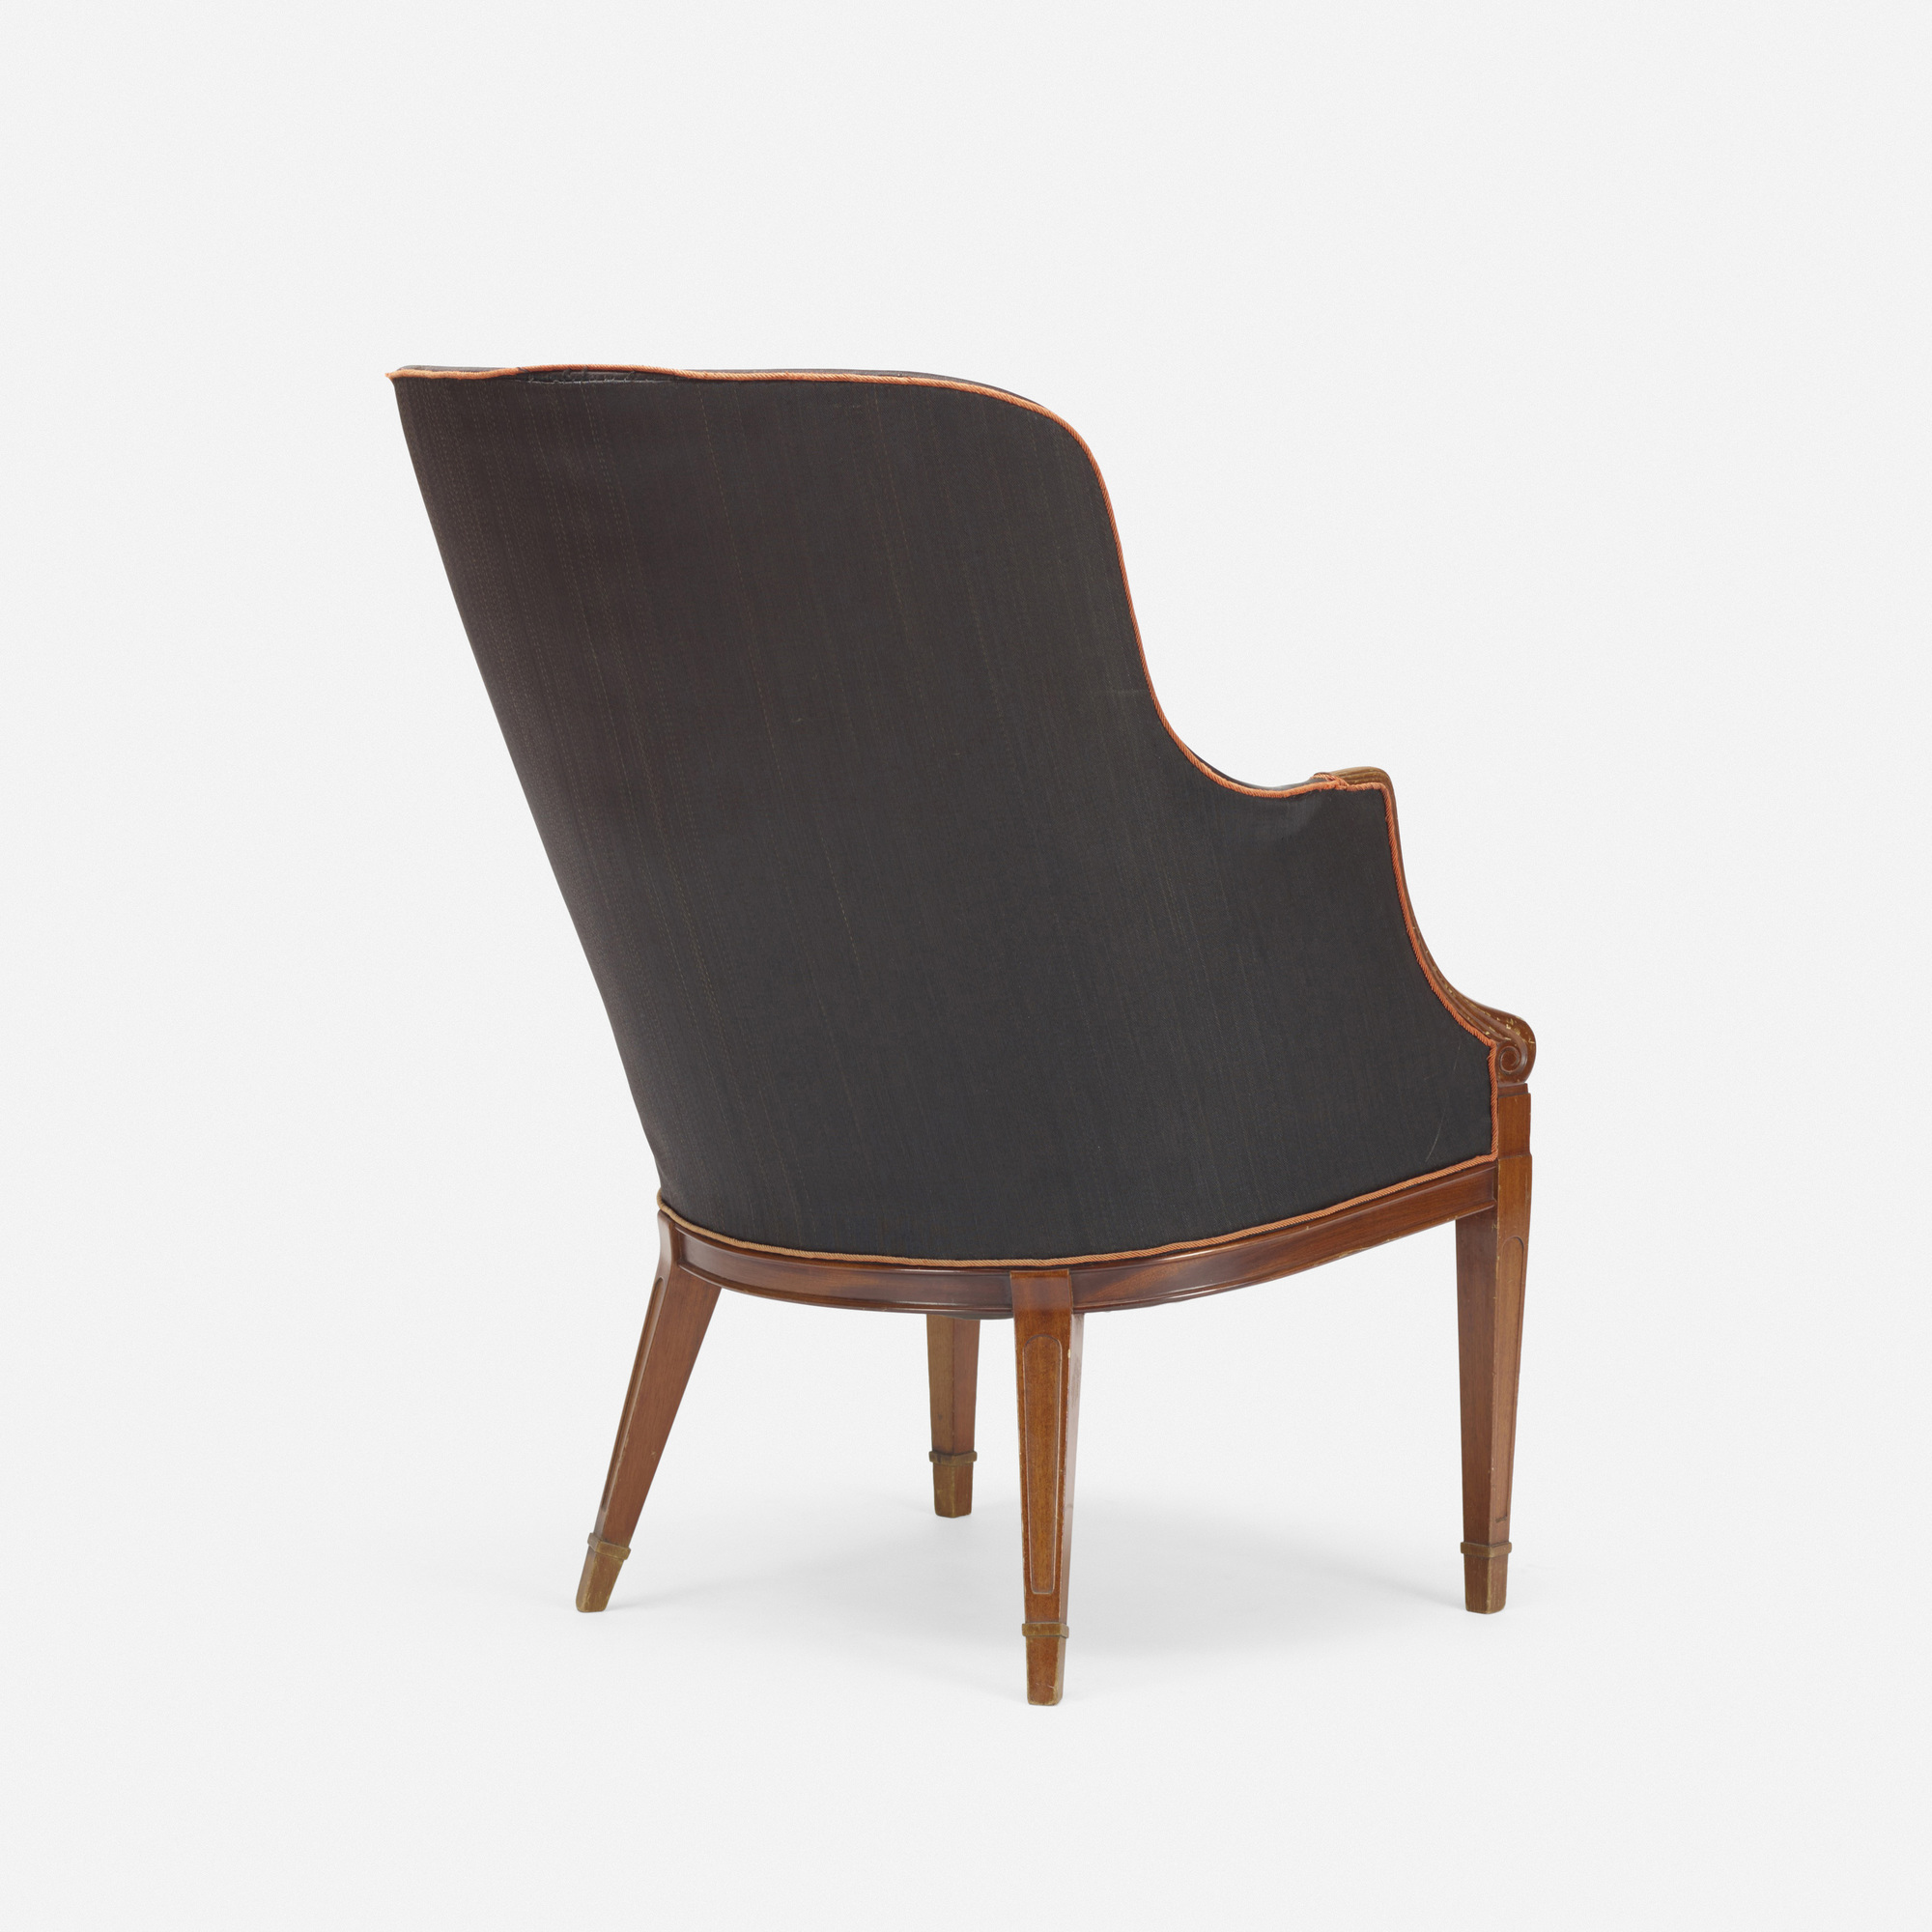 120: Frits Henningsen / lounge chair (3 of 4)